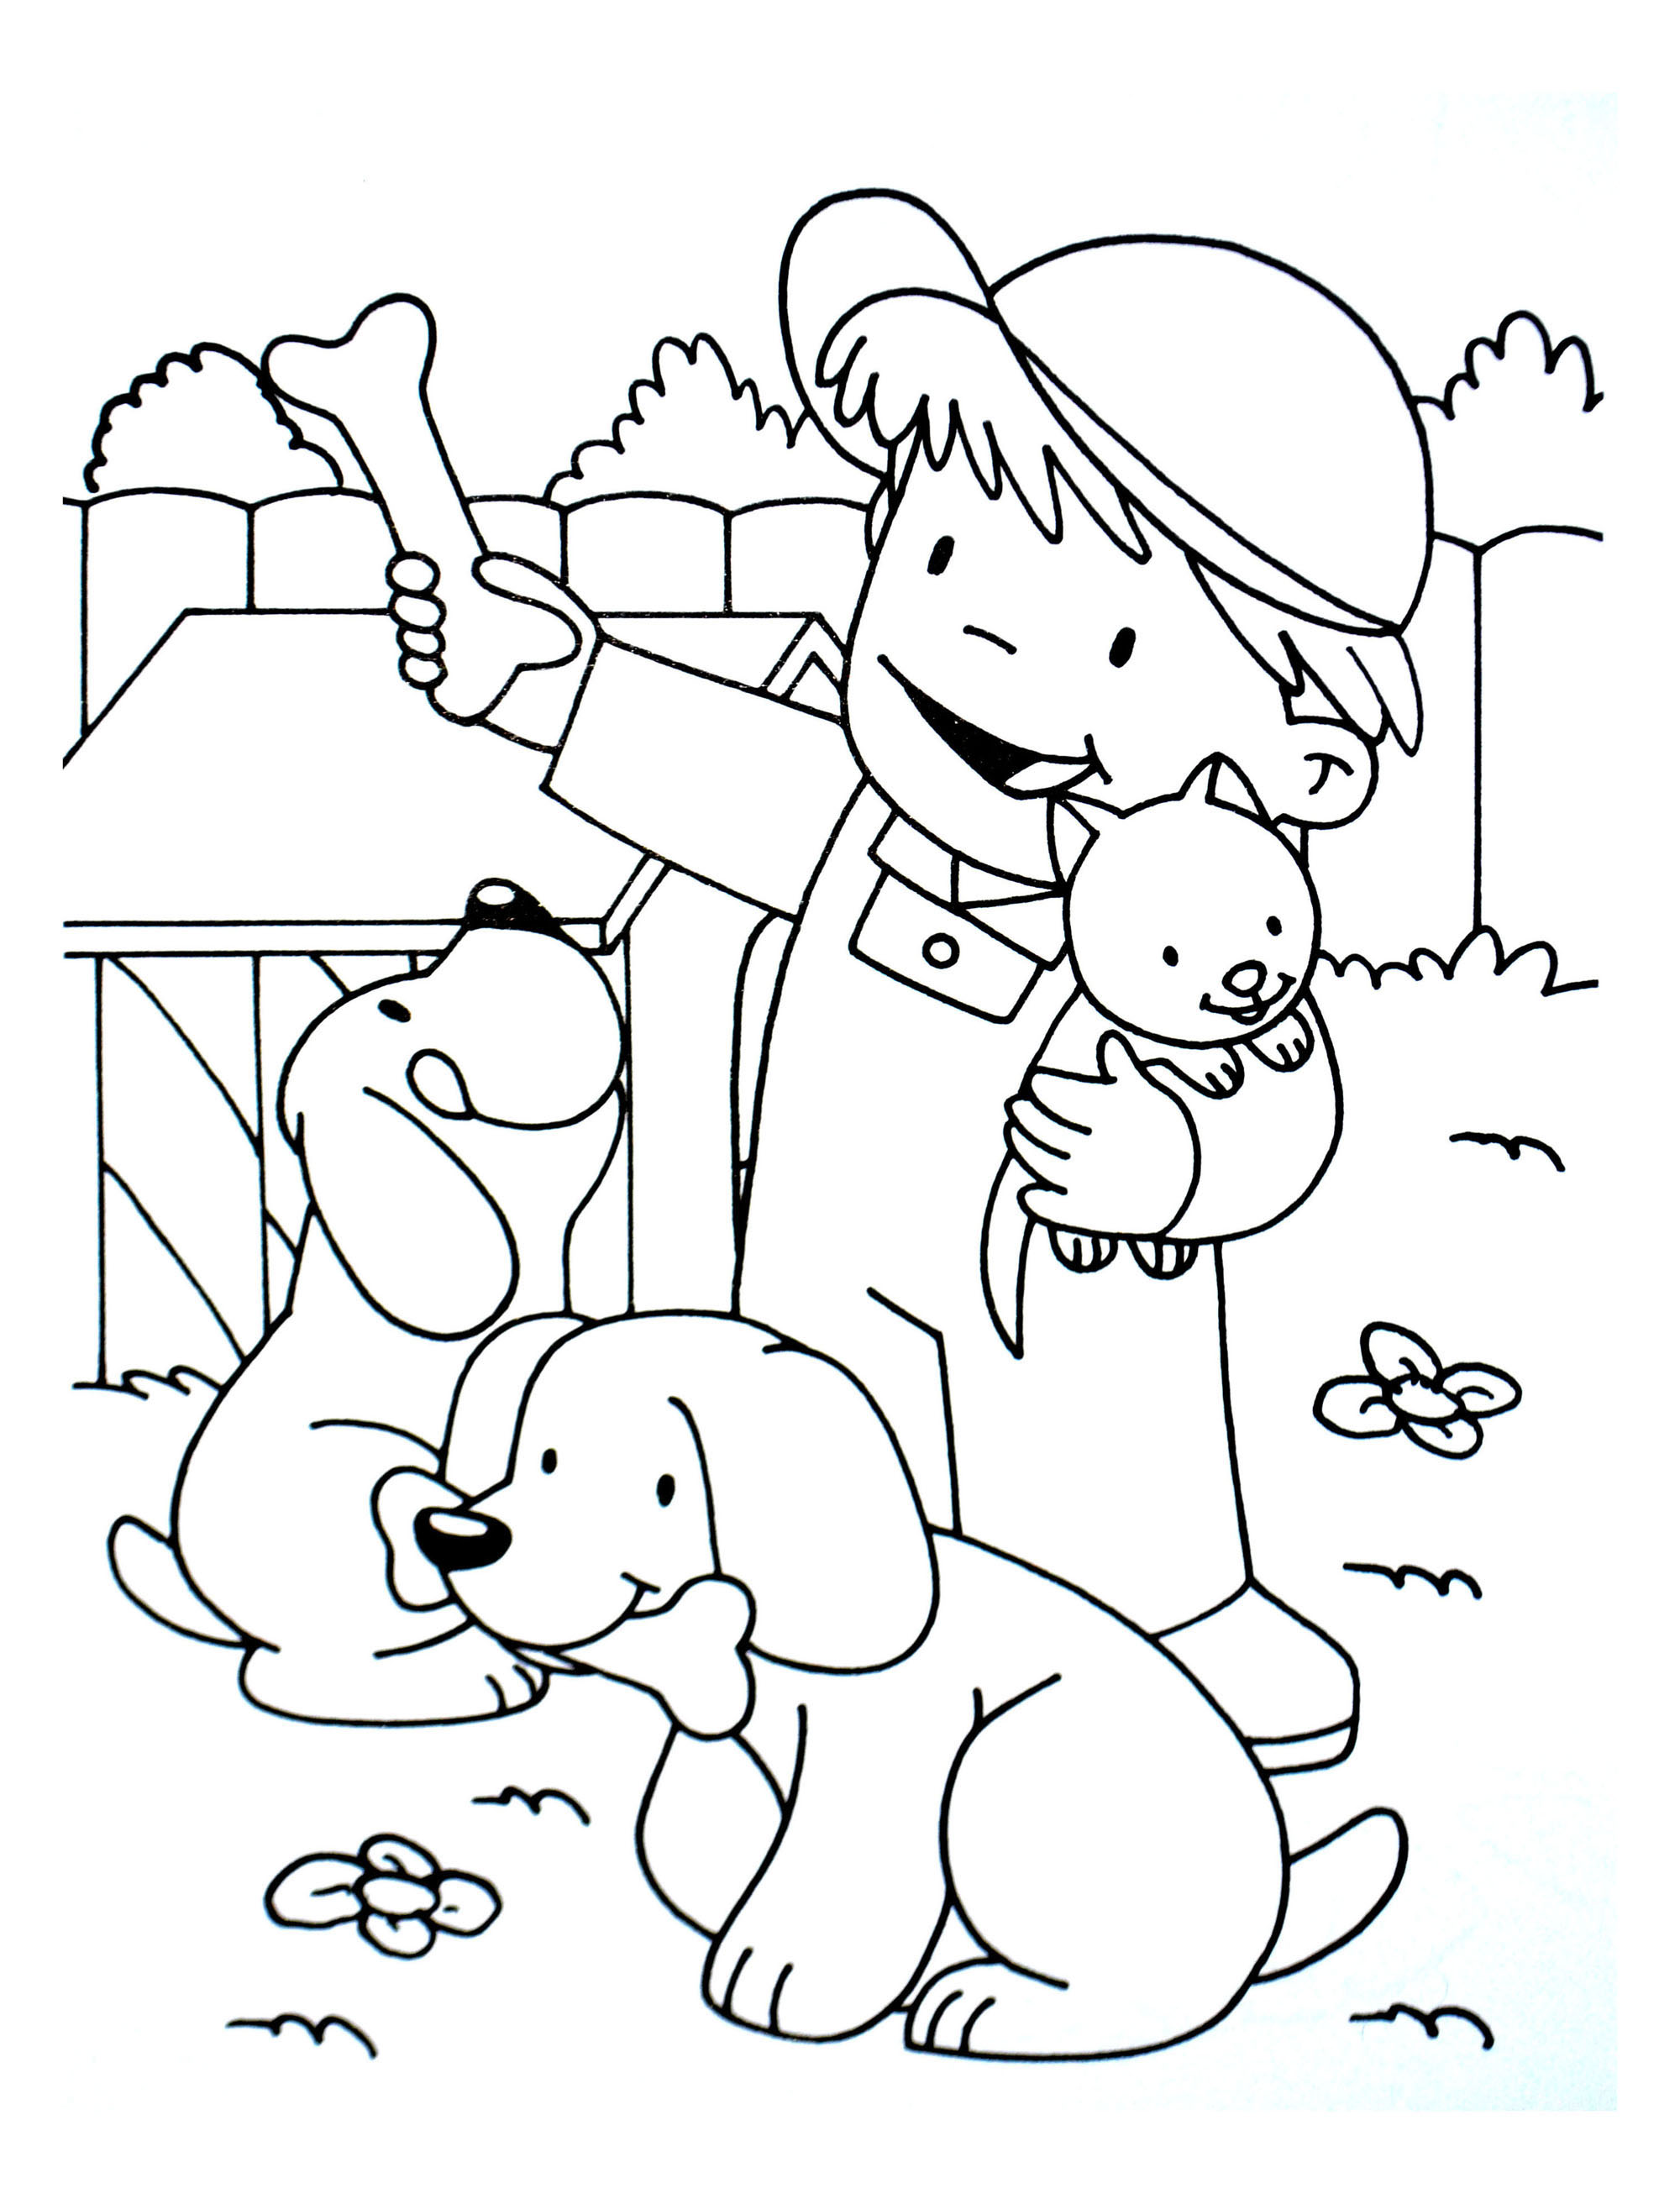 Simple Dogs coloring page to print and color for free : the farm